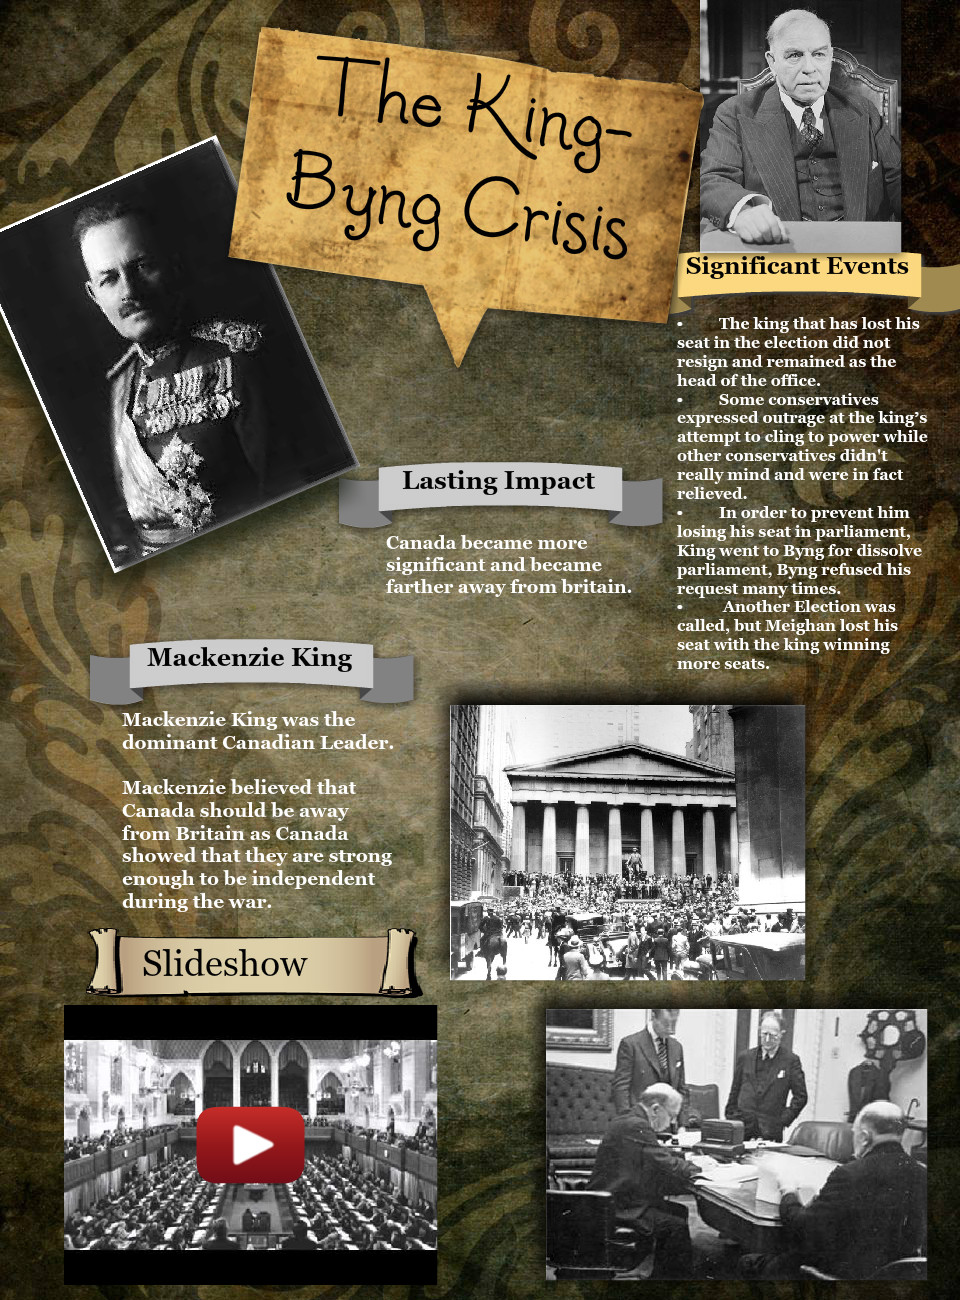 [2015] An Le: The King-Byng Crisis